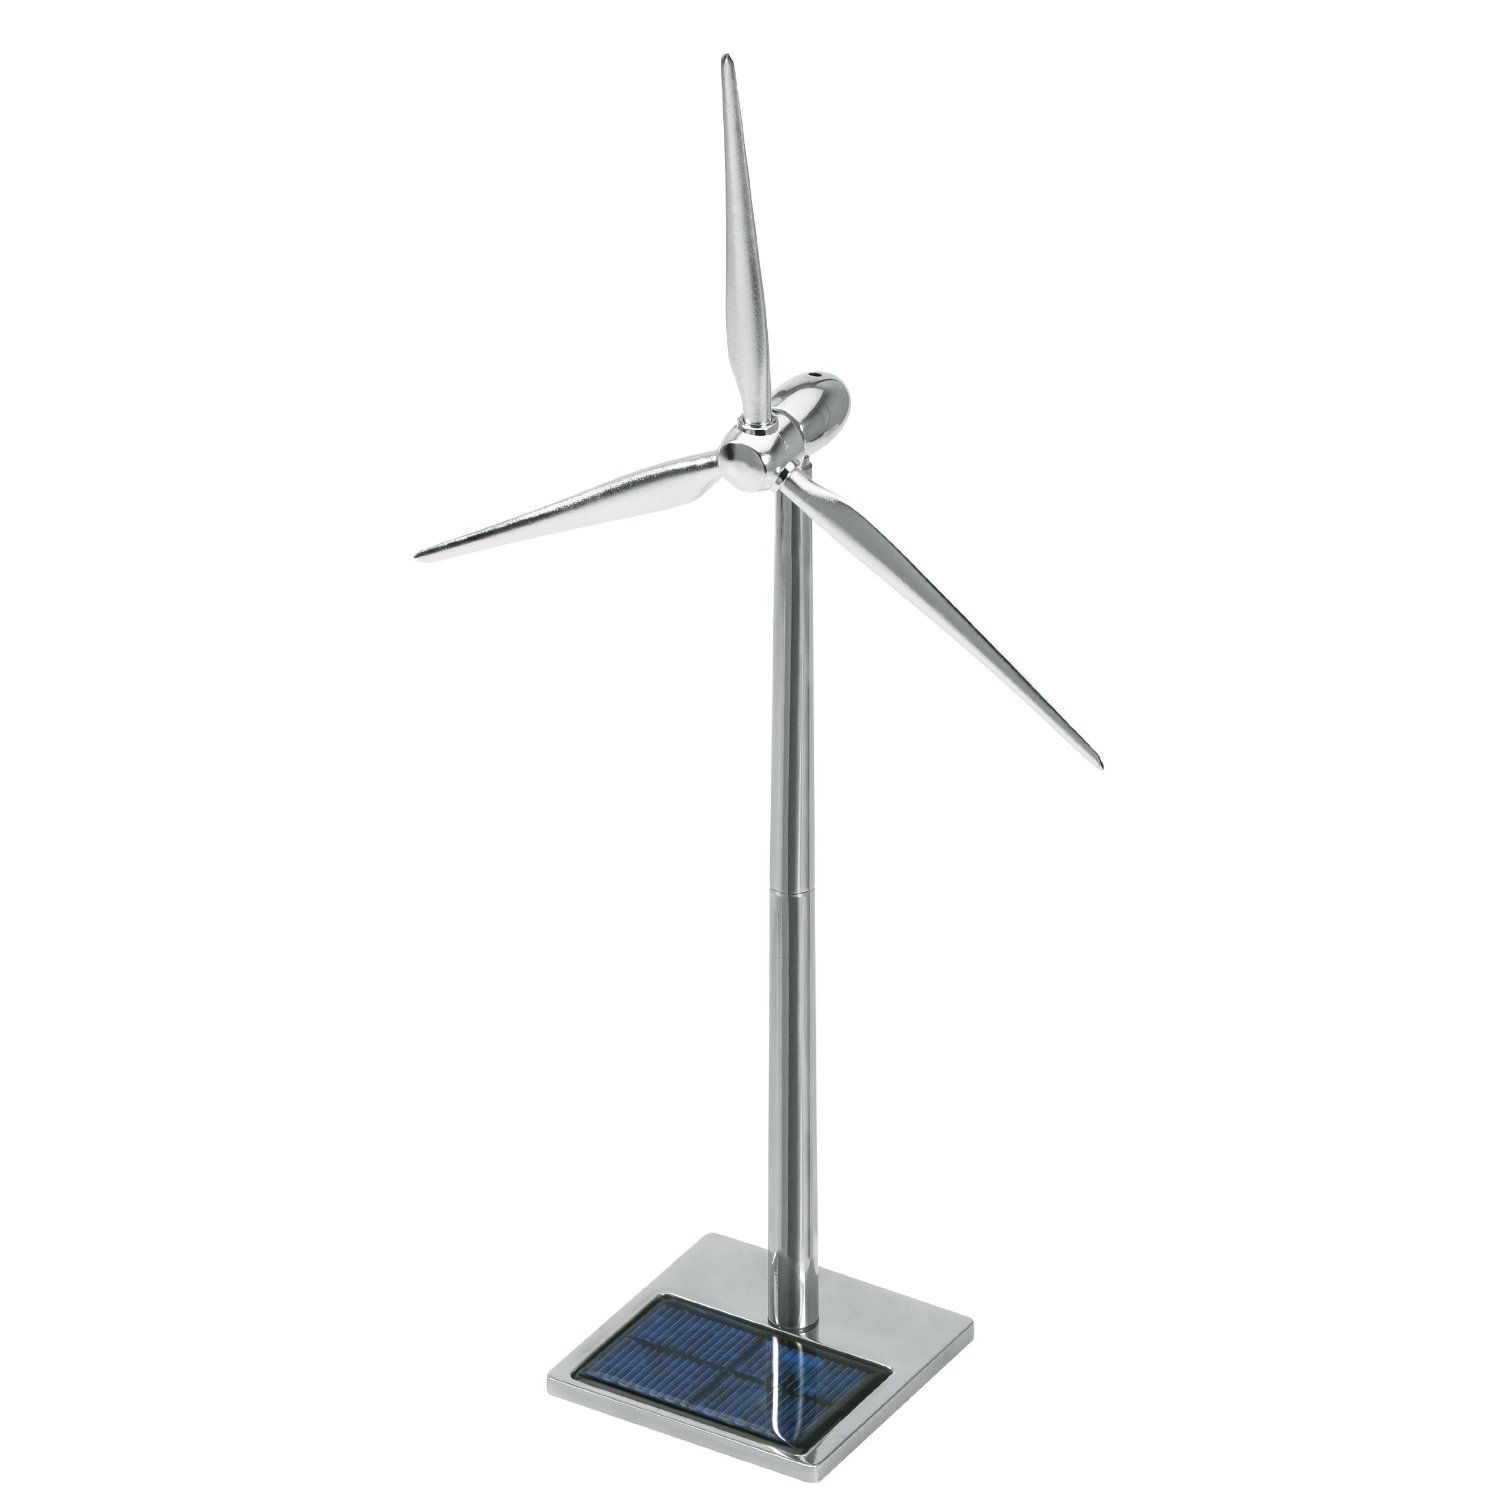 Aluminium Wind Turbine This beautiful 1 87 scale miniature wind